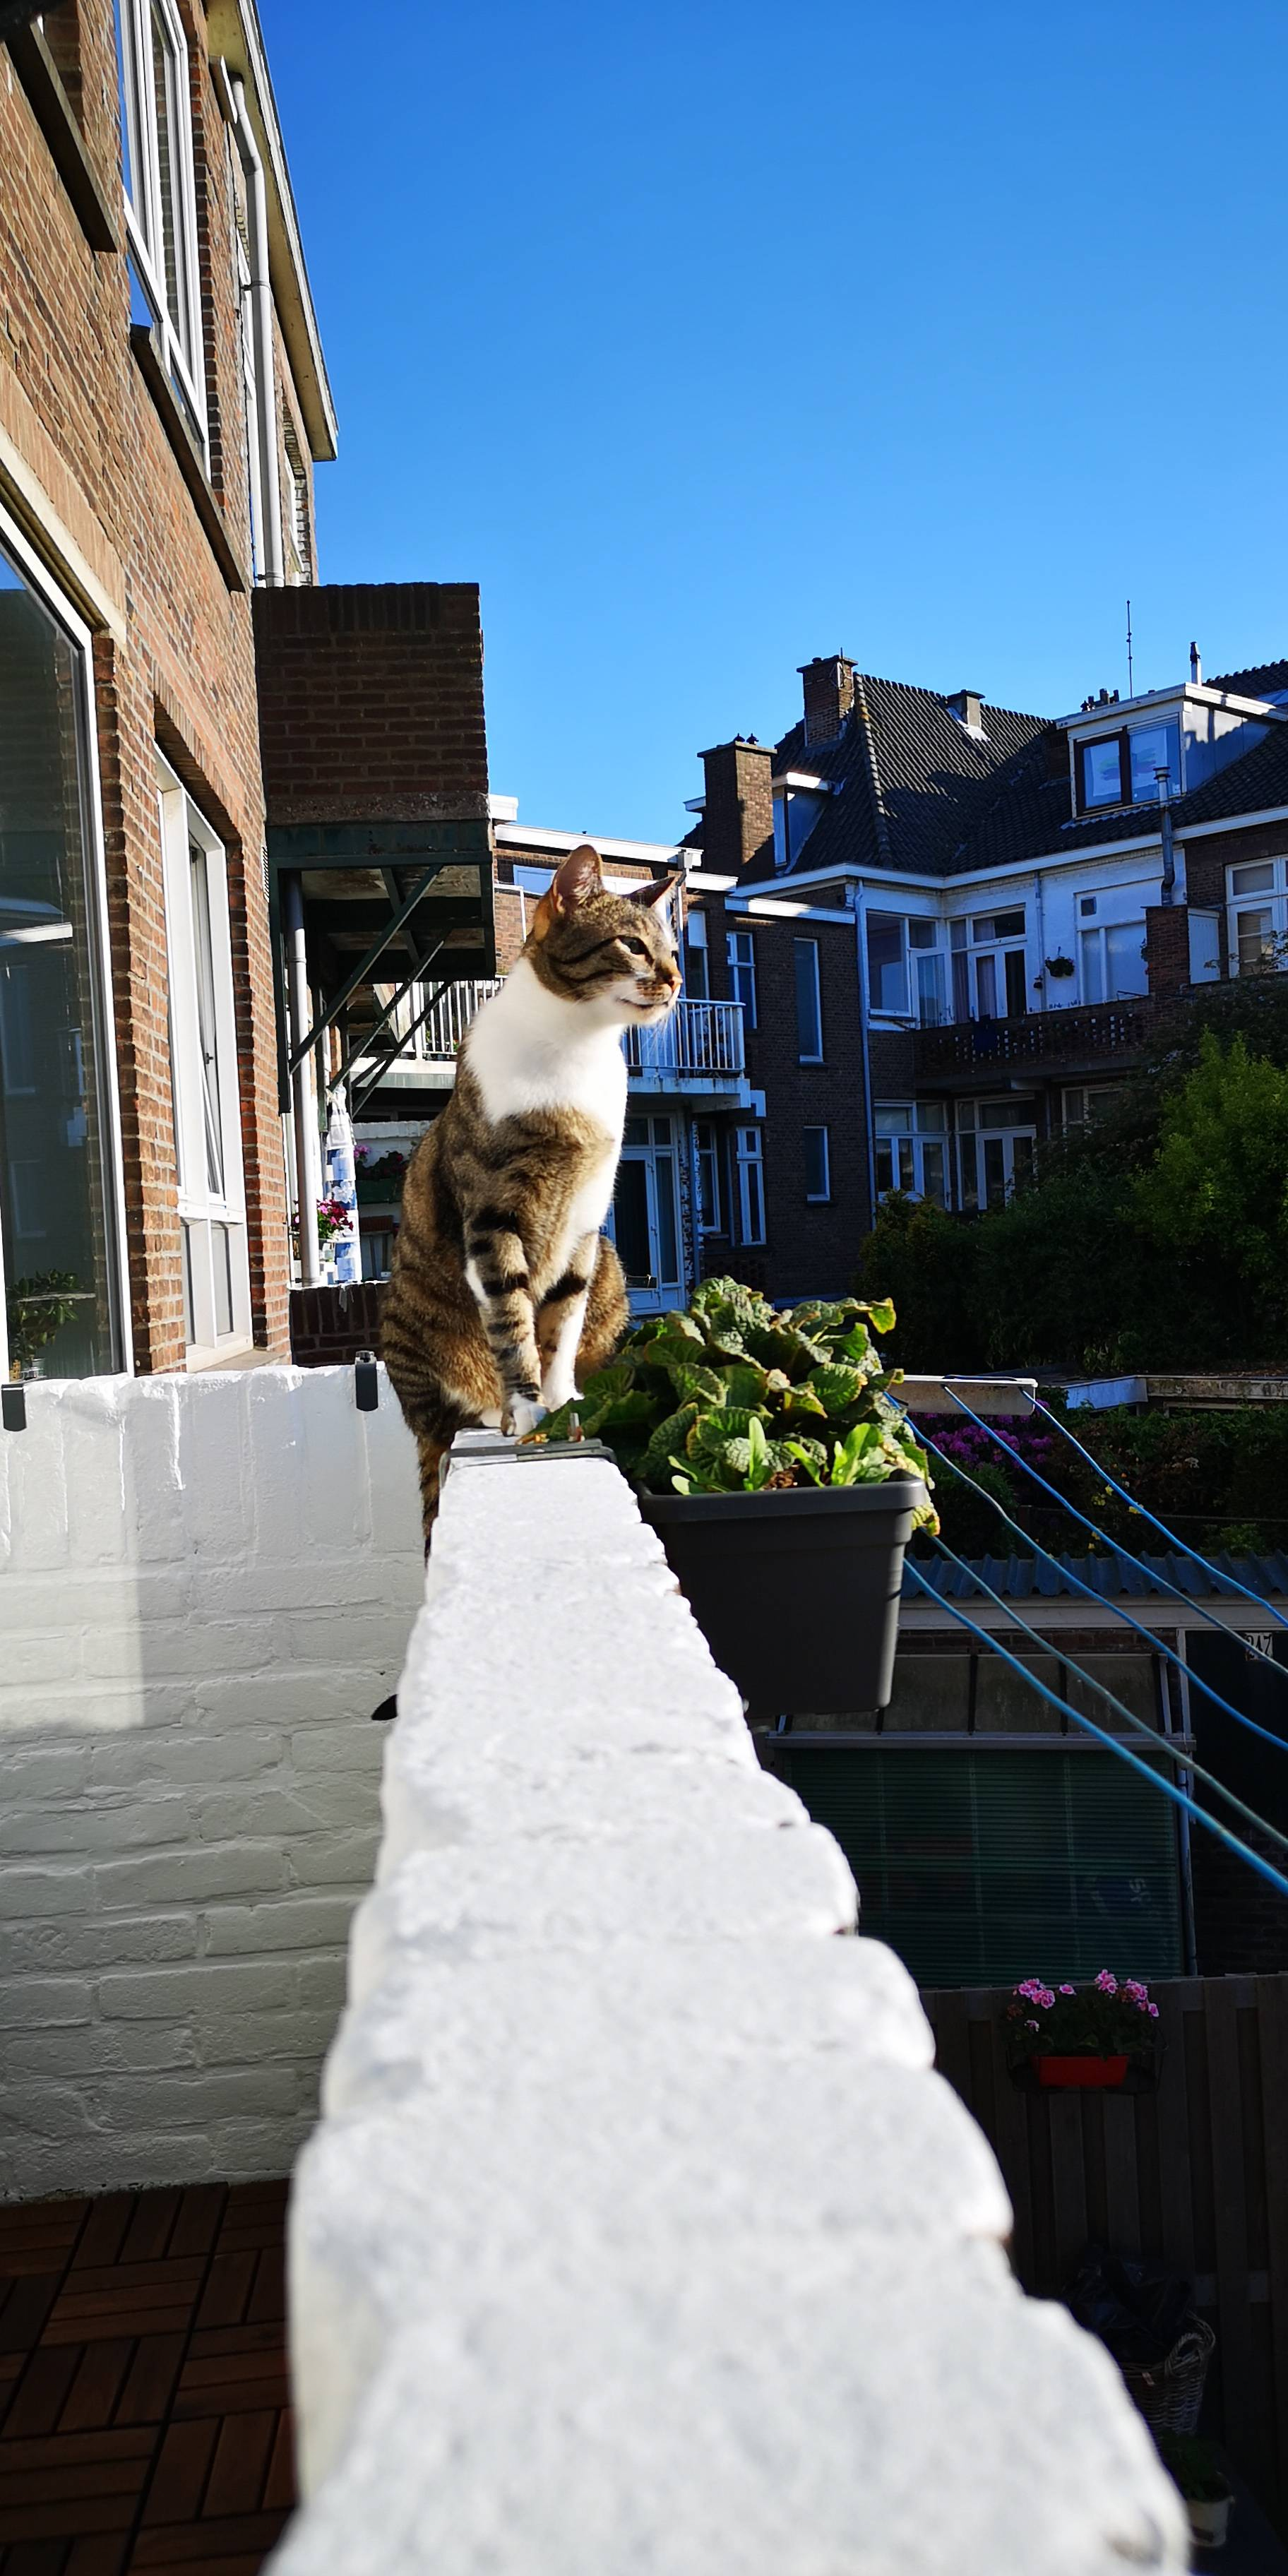 Mika the cat who got lost in the Netherlands